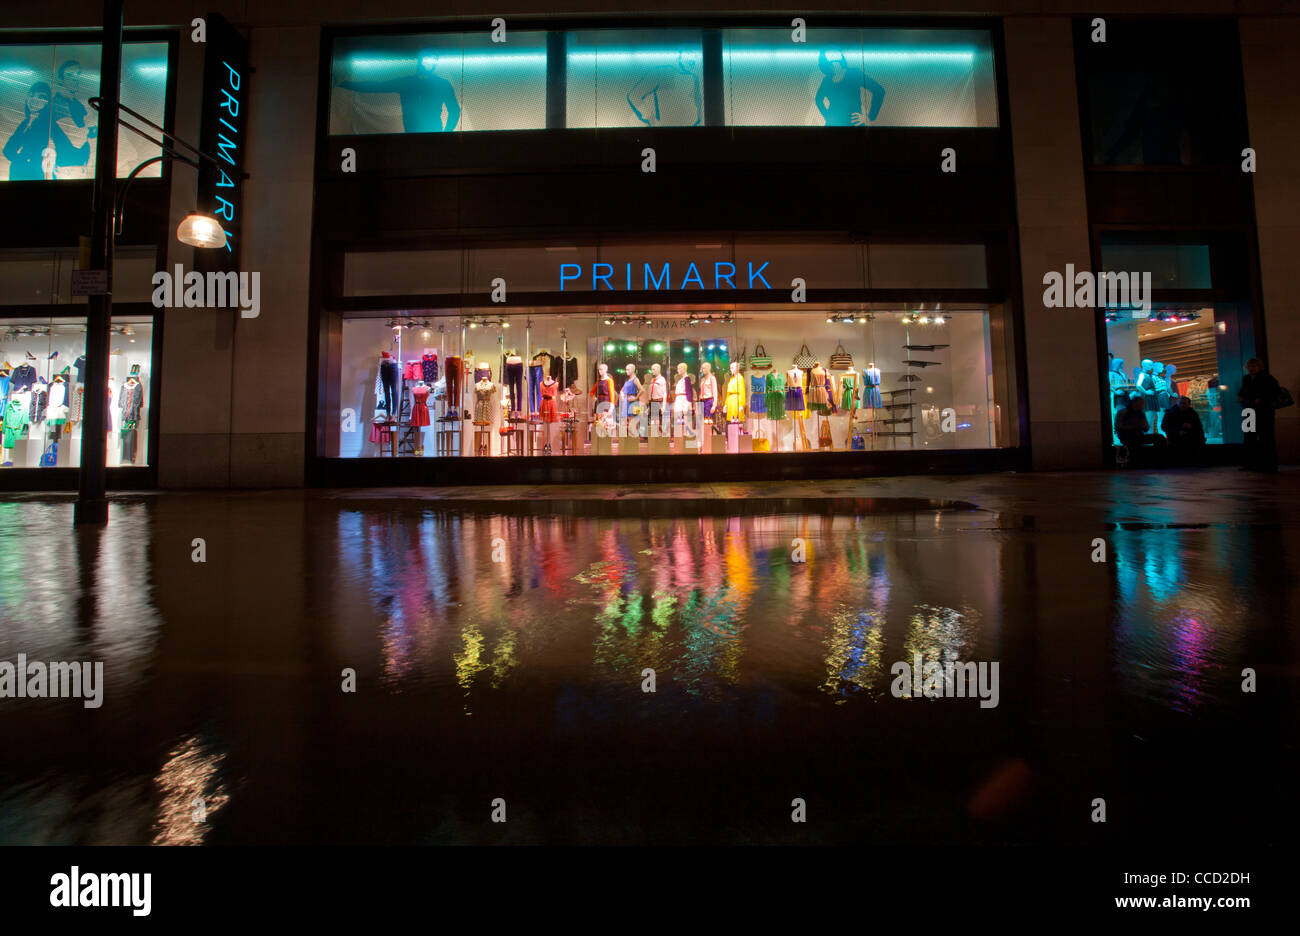 Primark shopfront and reflection in flood waters after water mains burst along Oxford Street, London, UK. - Stock Image